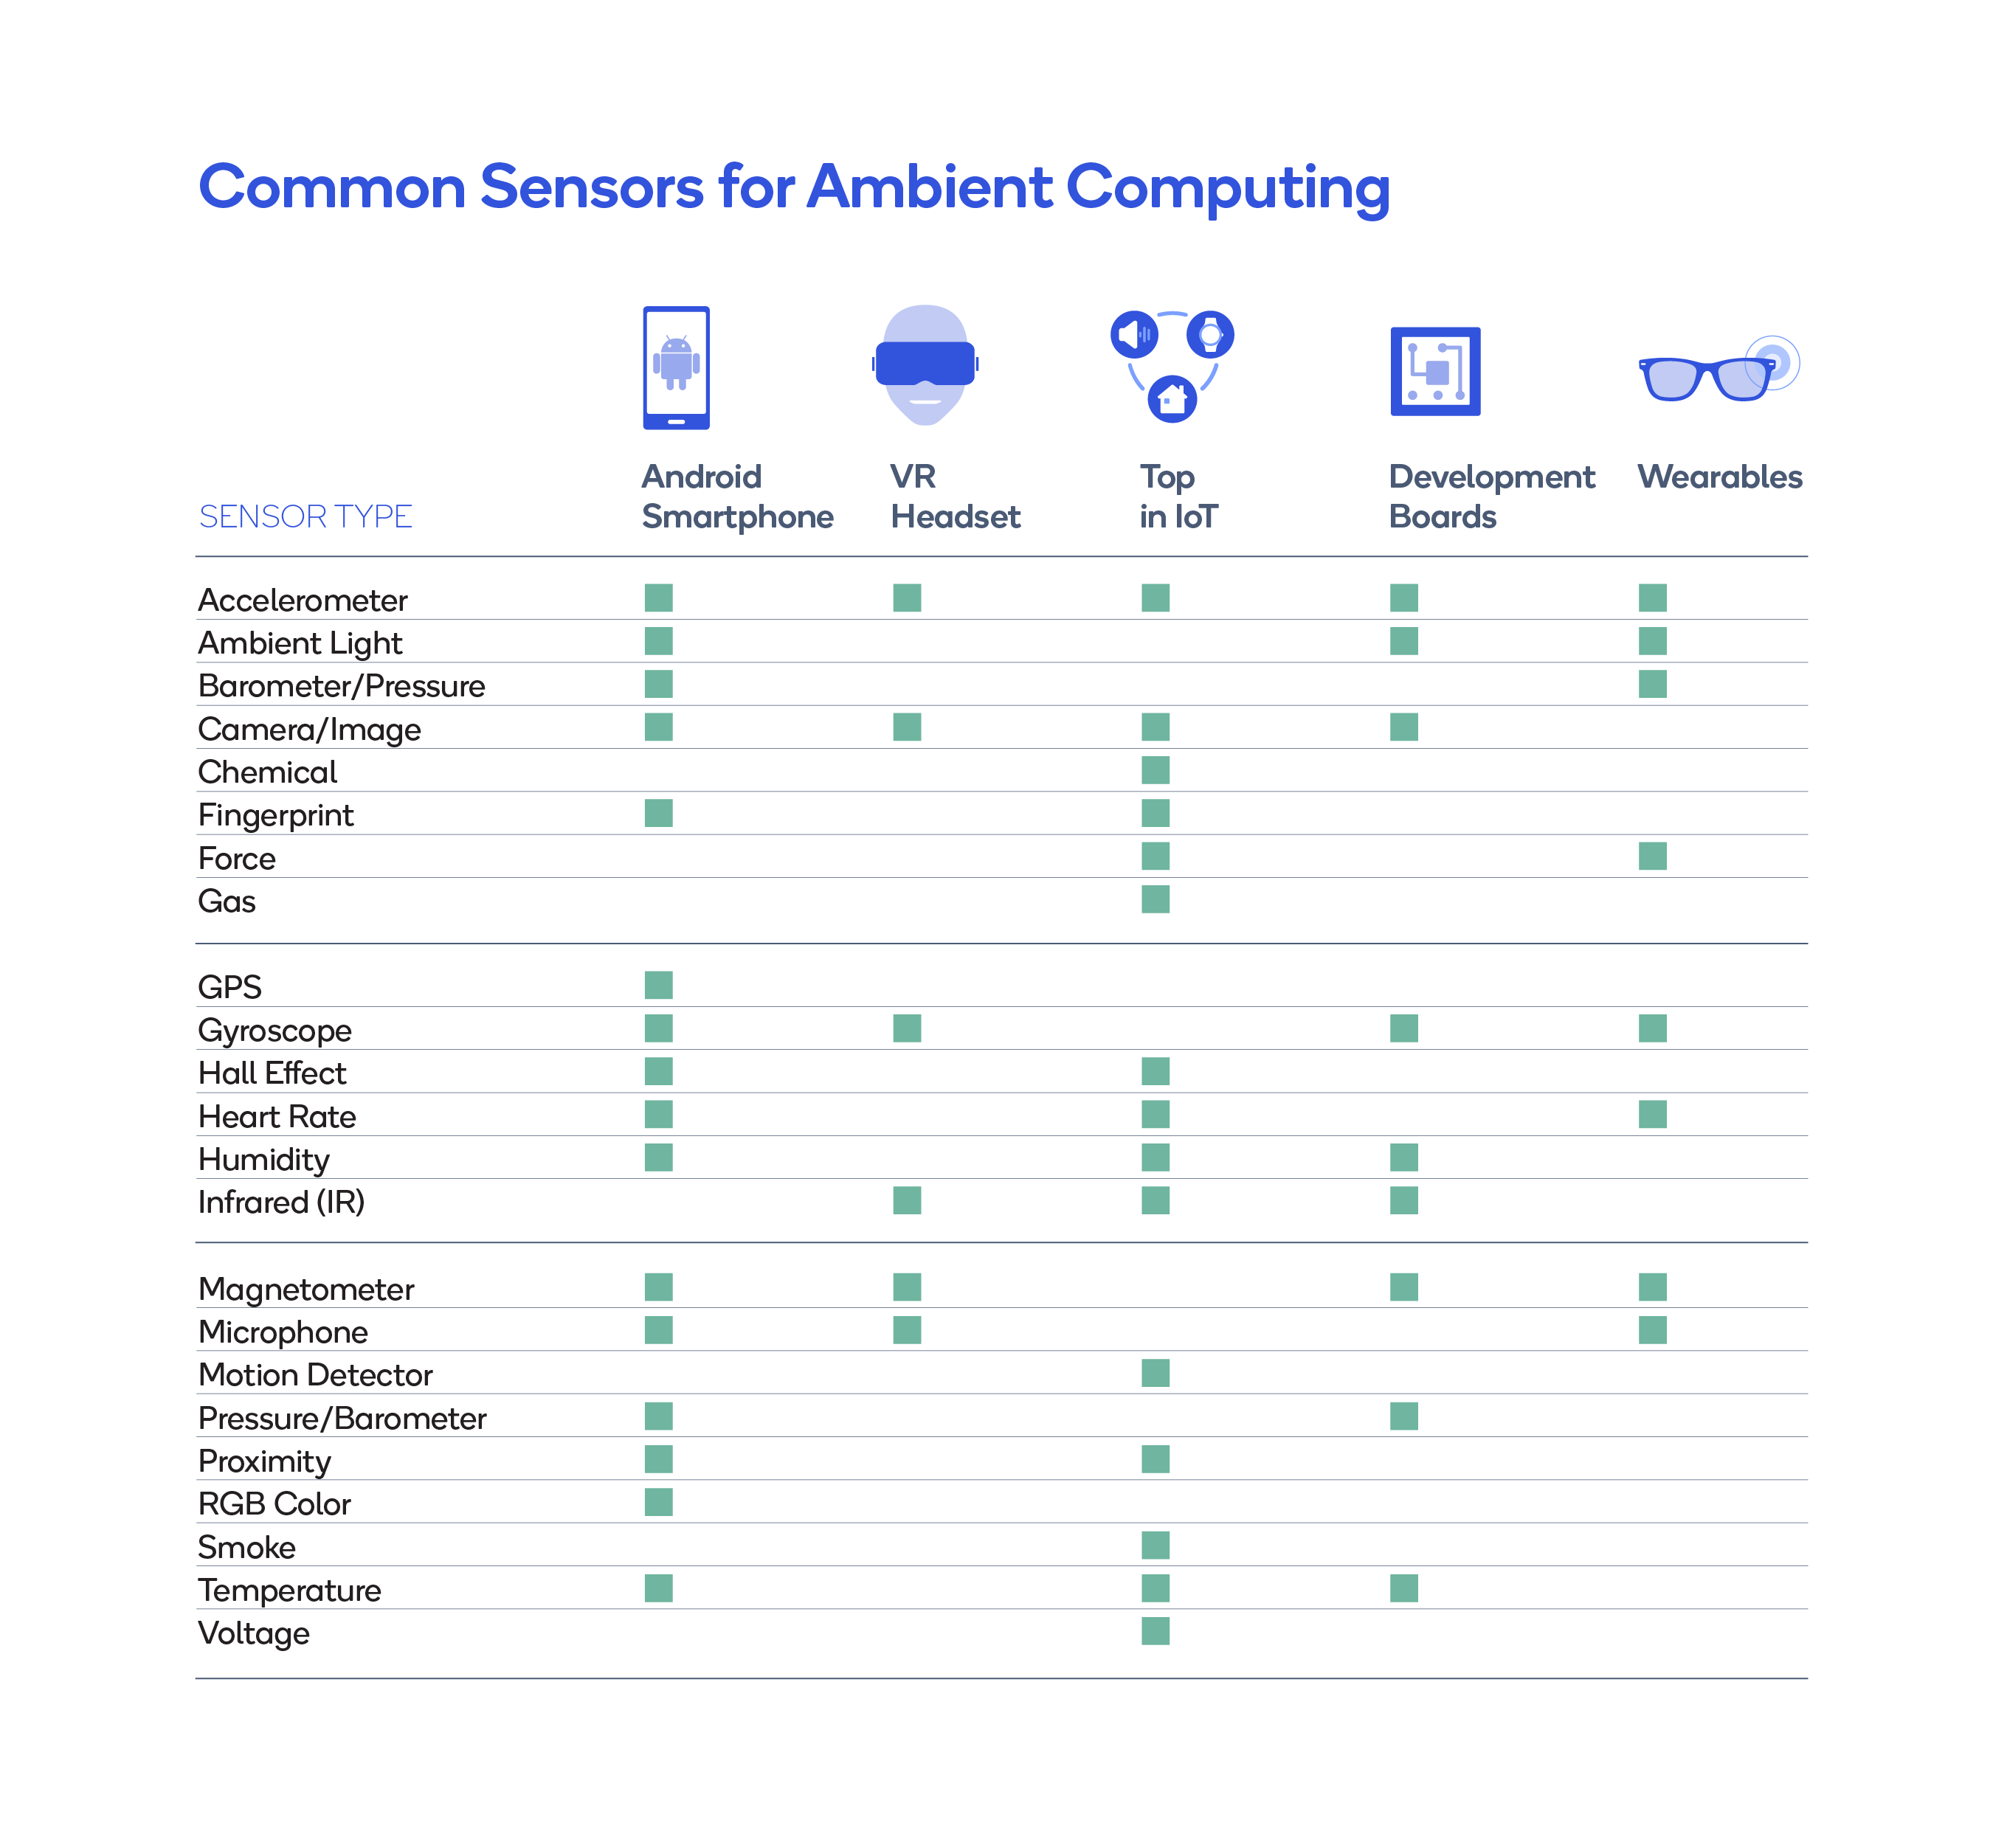 Common Sensors for Ambient Computing